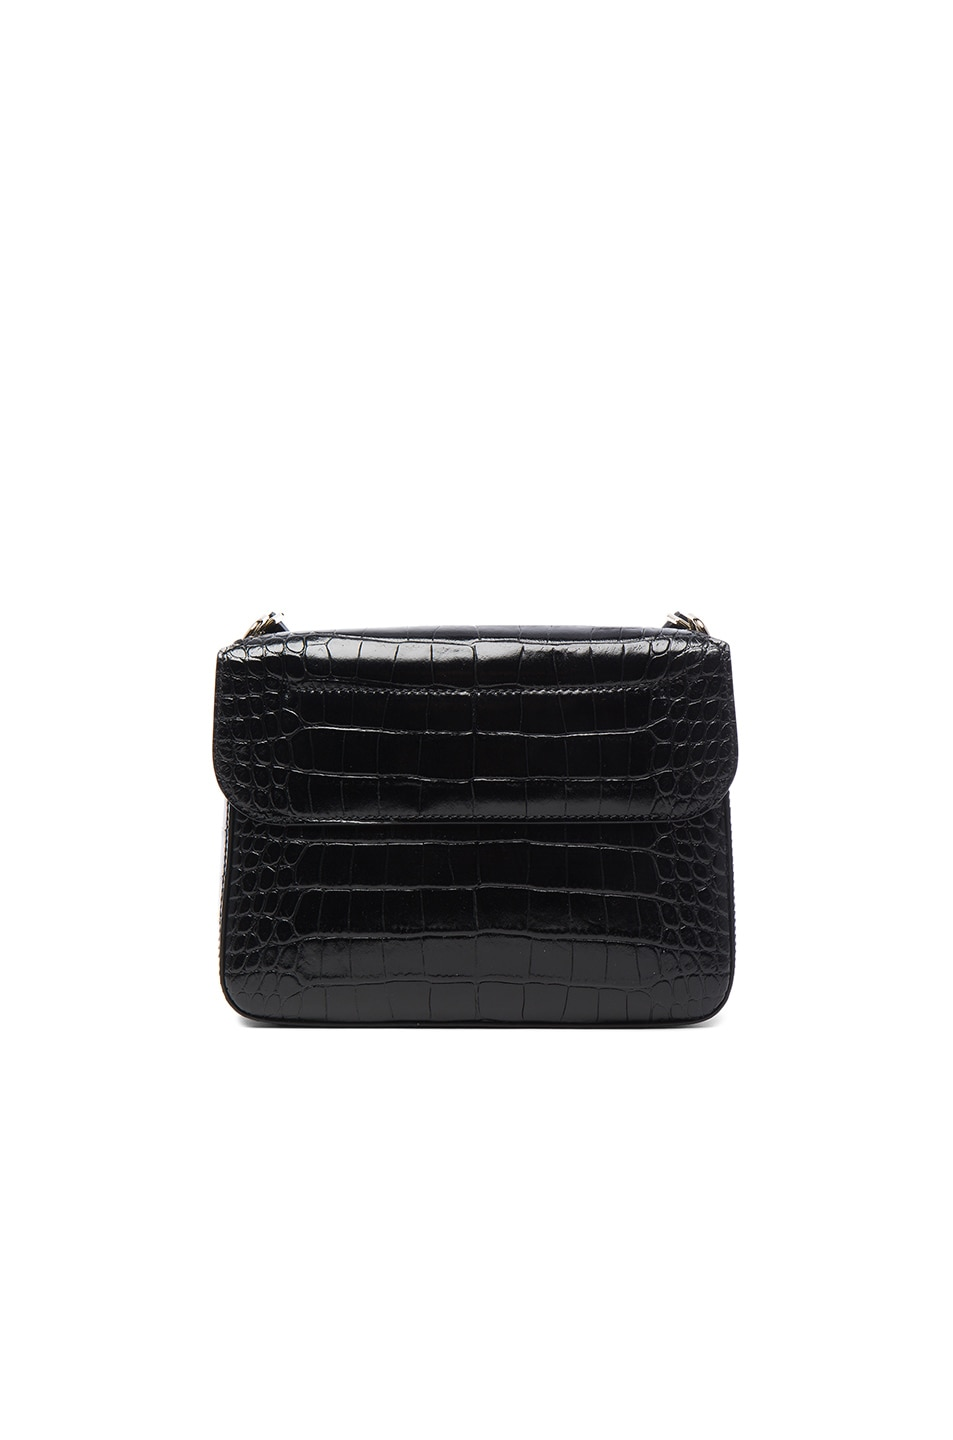 Image 2 of Givenchy Small Crocodile Embossed Leather Nobile in Black